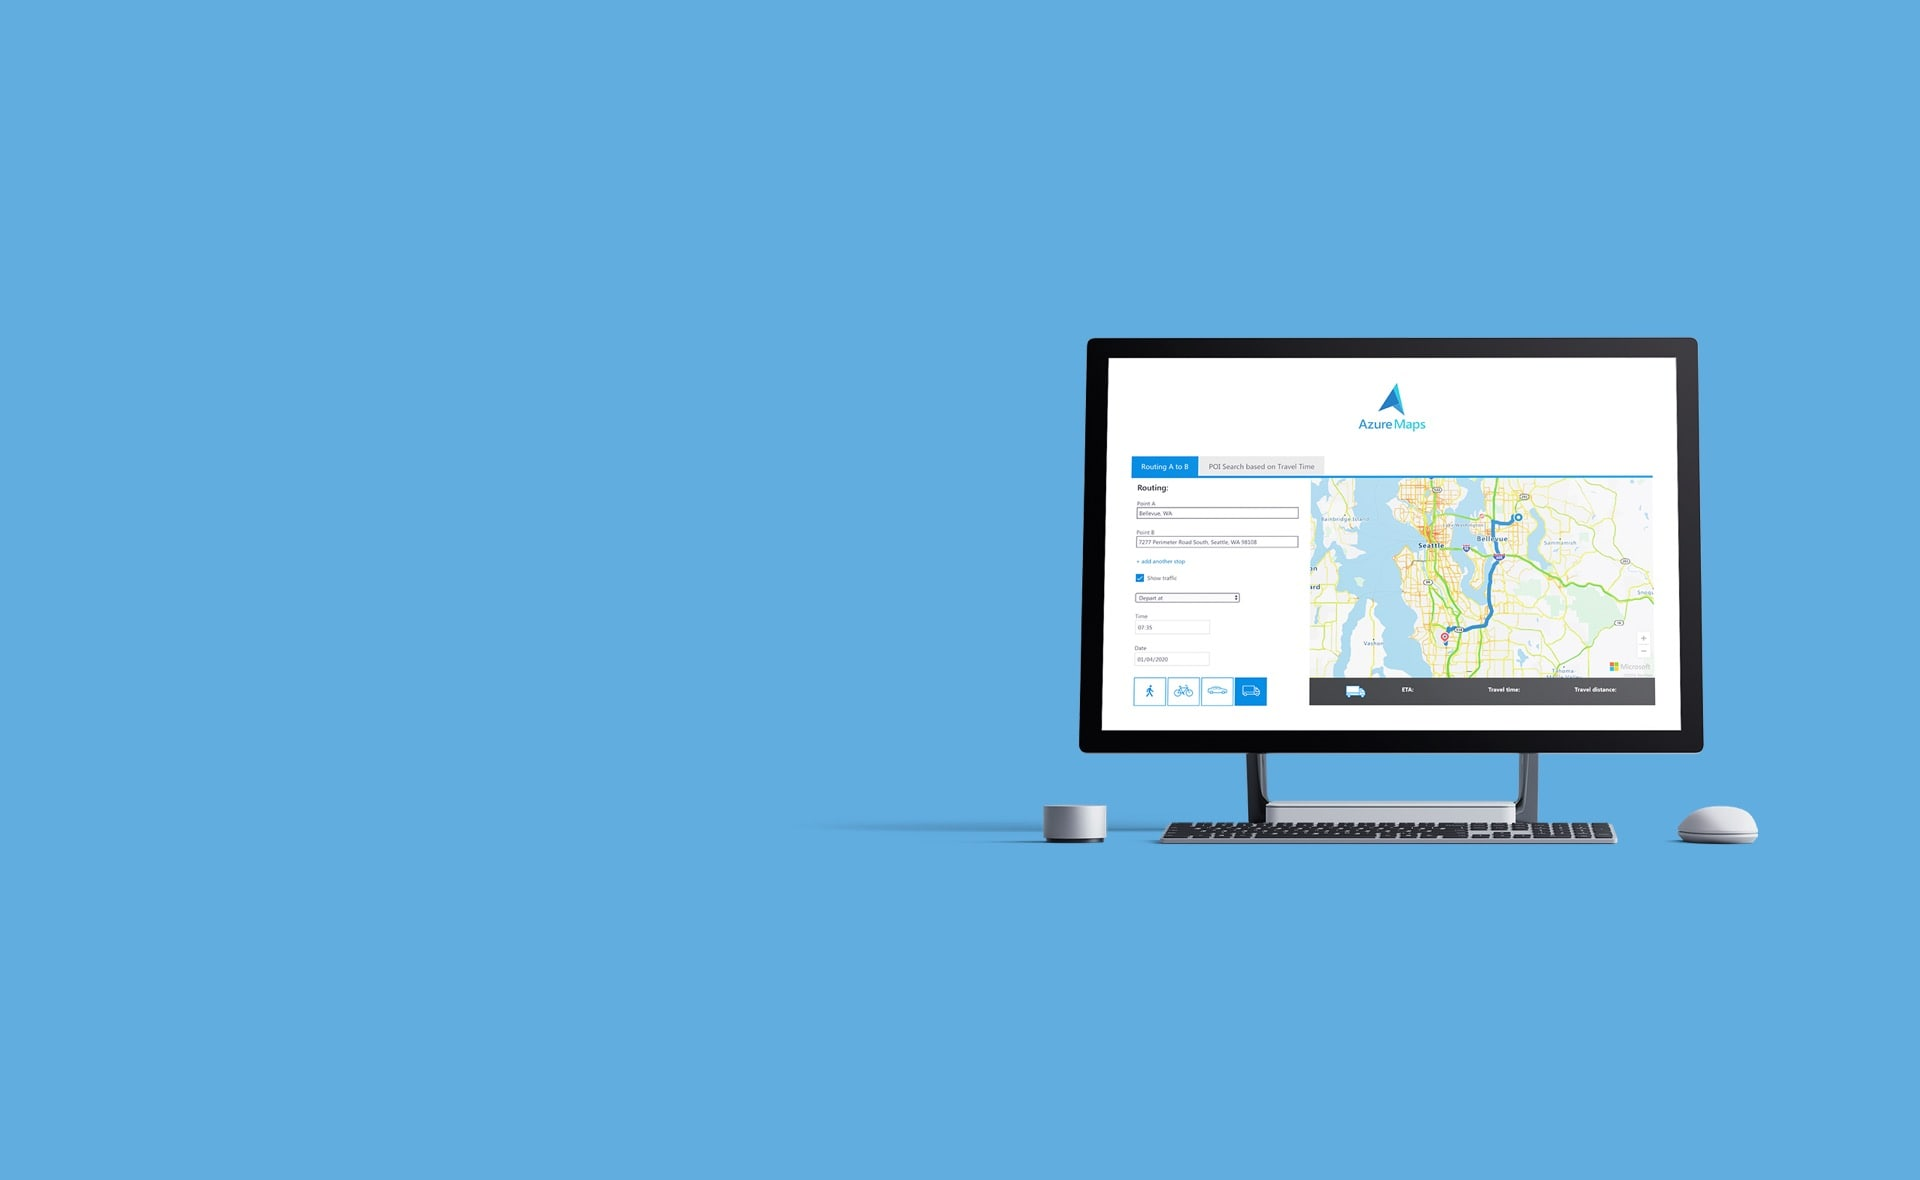 Microsoft Azure Maps and TomTom